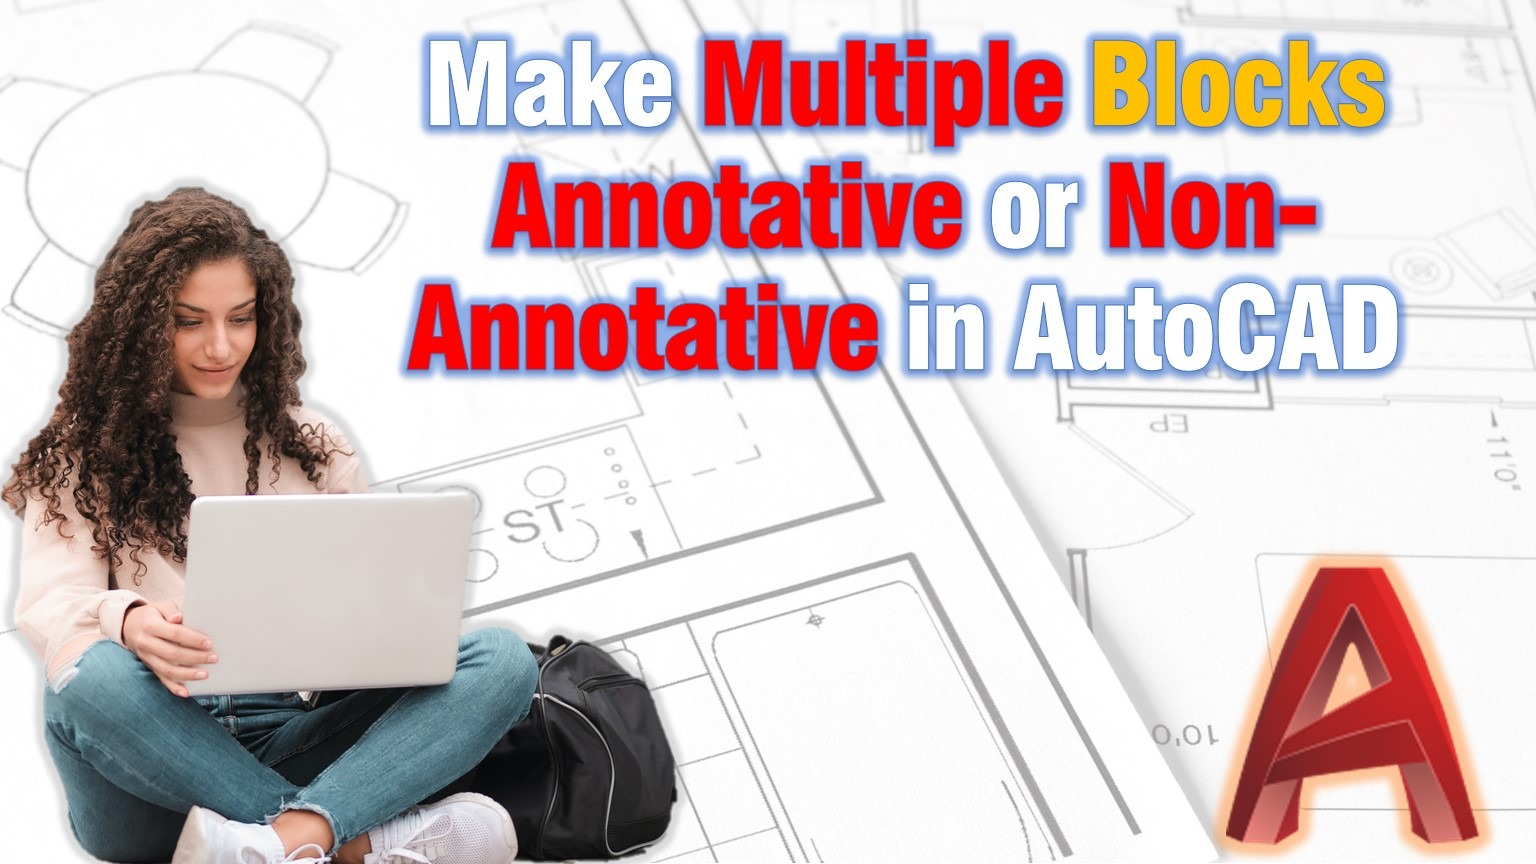 Make multiple blocks annotative or non annotative in AutoCAD